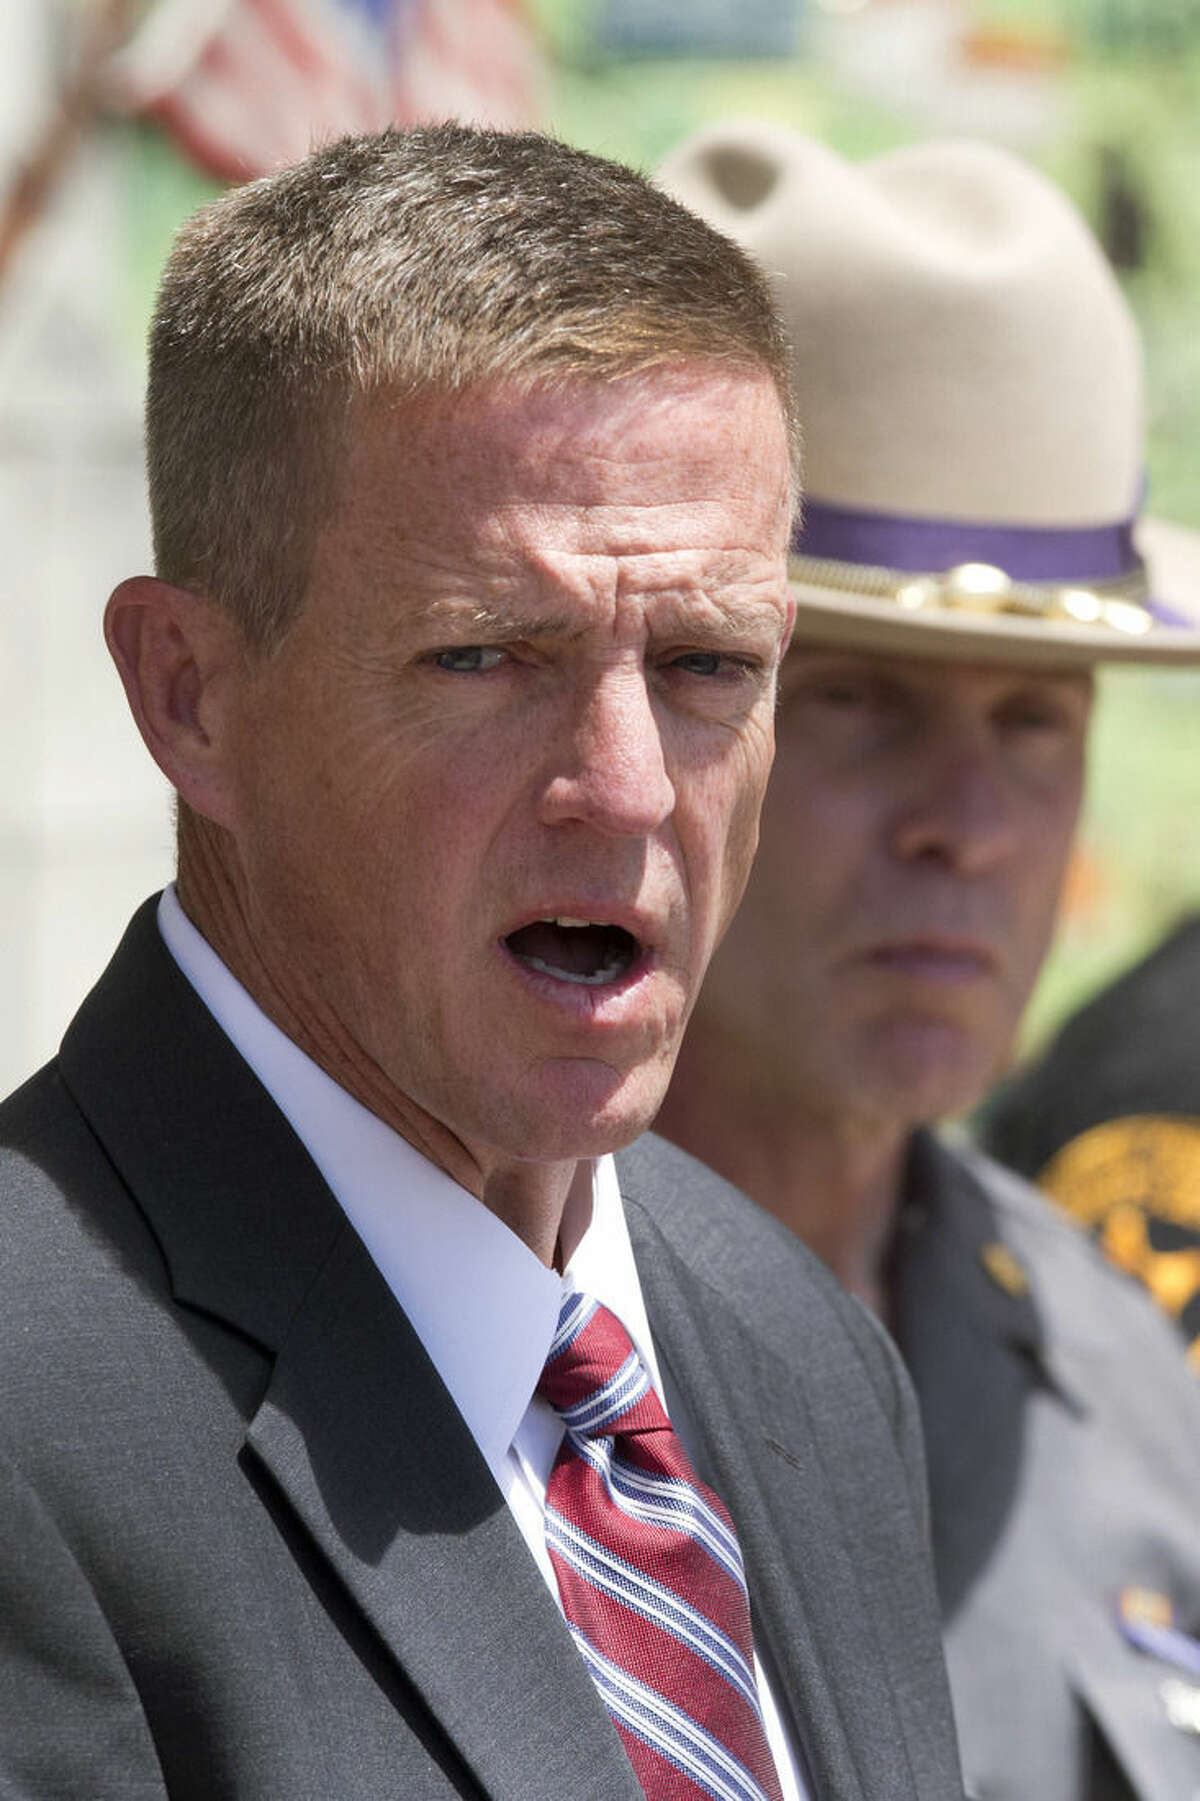 Clinton County District Attorney Andrew Wylie, left, and Maj. Charles Guess, right, with the New York State Police attend a news conference, Wednesday, June 17, 2015 in Plattsburgh, N.Y. where they discussed the escape of David Sweat and Richard Matt from the Clinton Correctional Facility in Dannemora, N.Y. The pair escaped from the maximum-security facility 12 days ago. (AP Photo/Mark Lennihan)